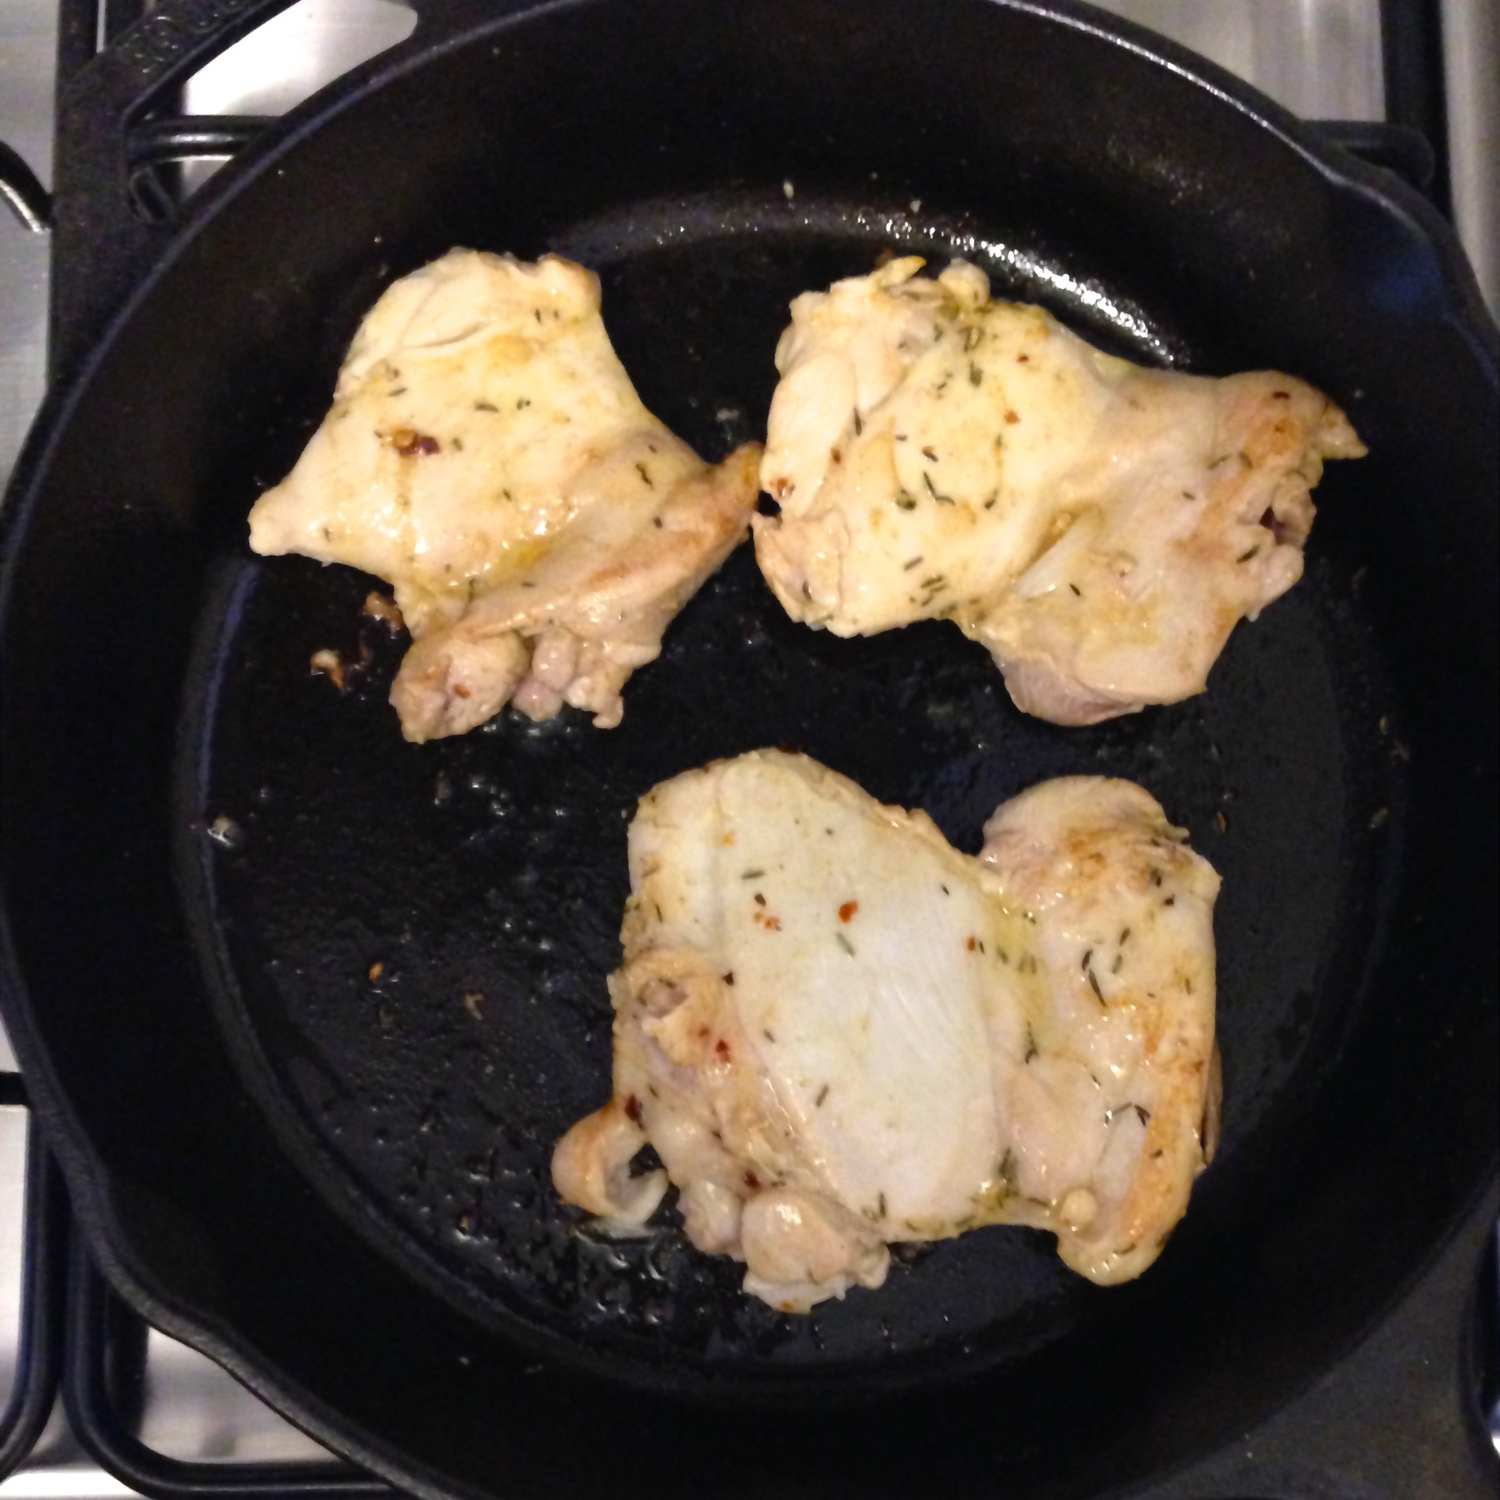 Lightly cooked chicken on skillet.